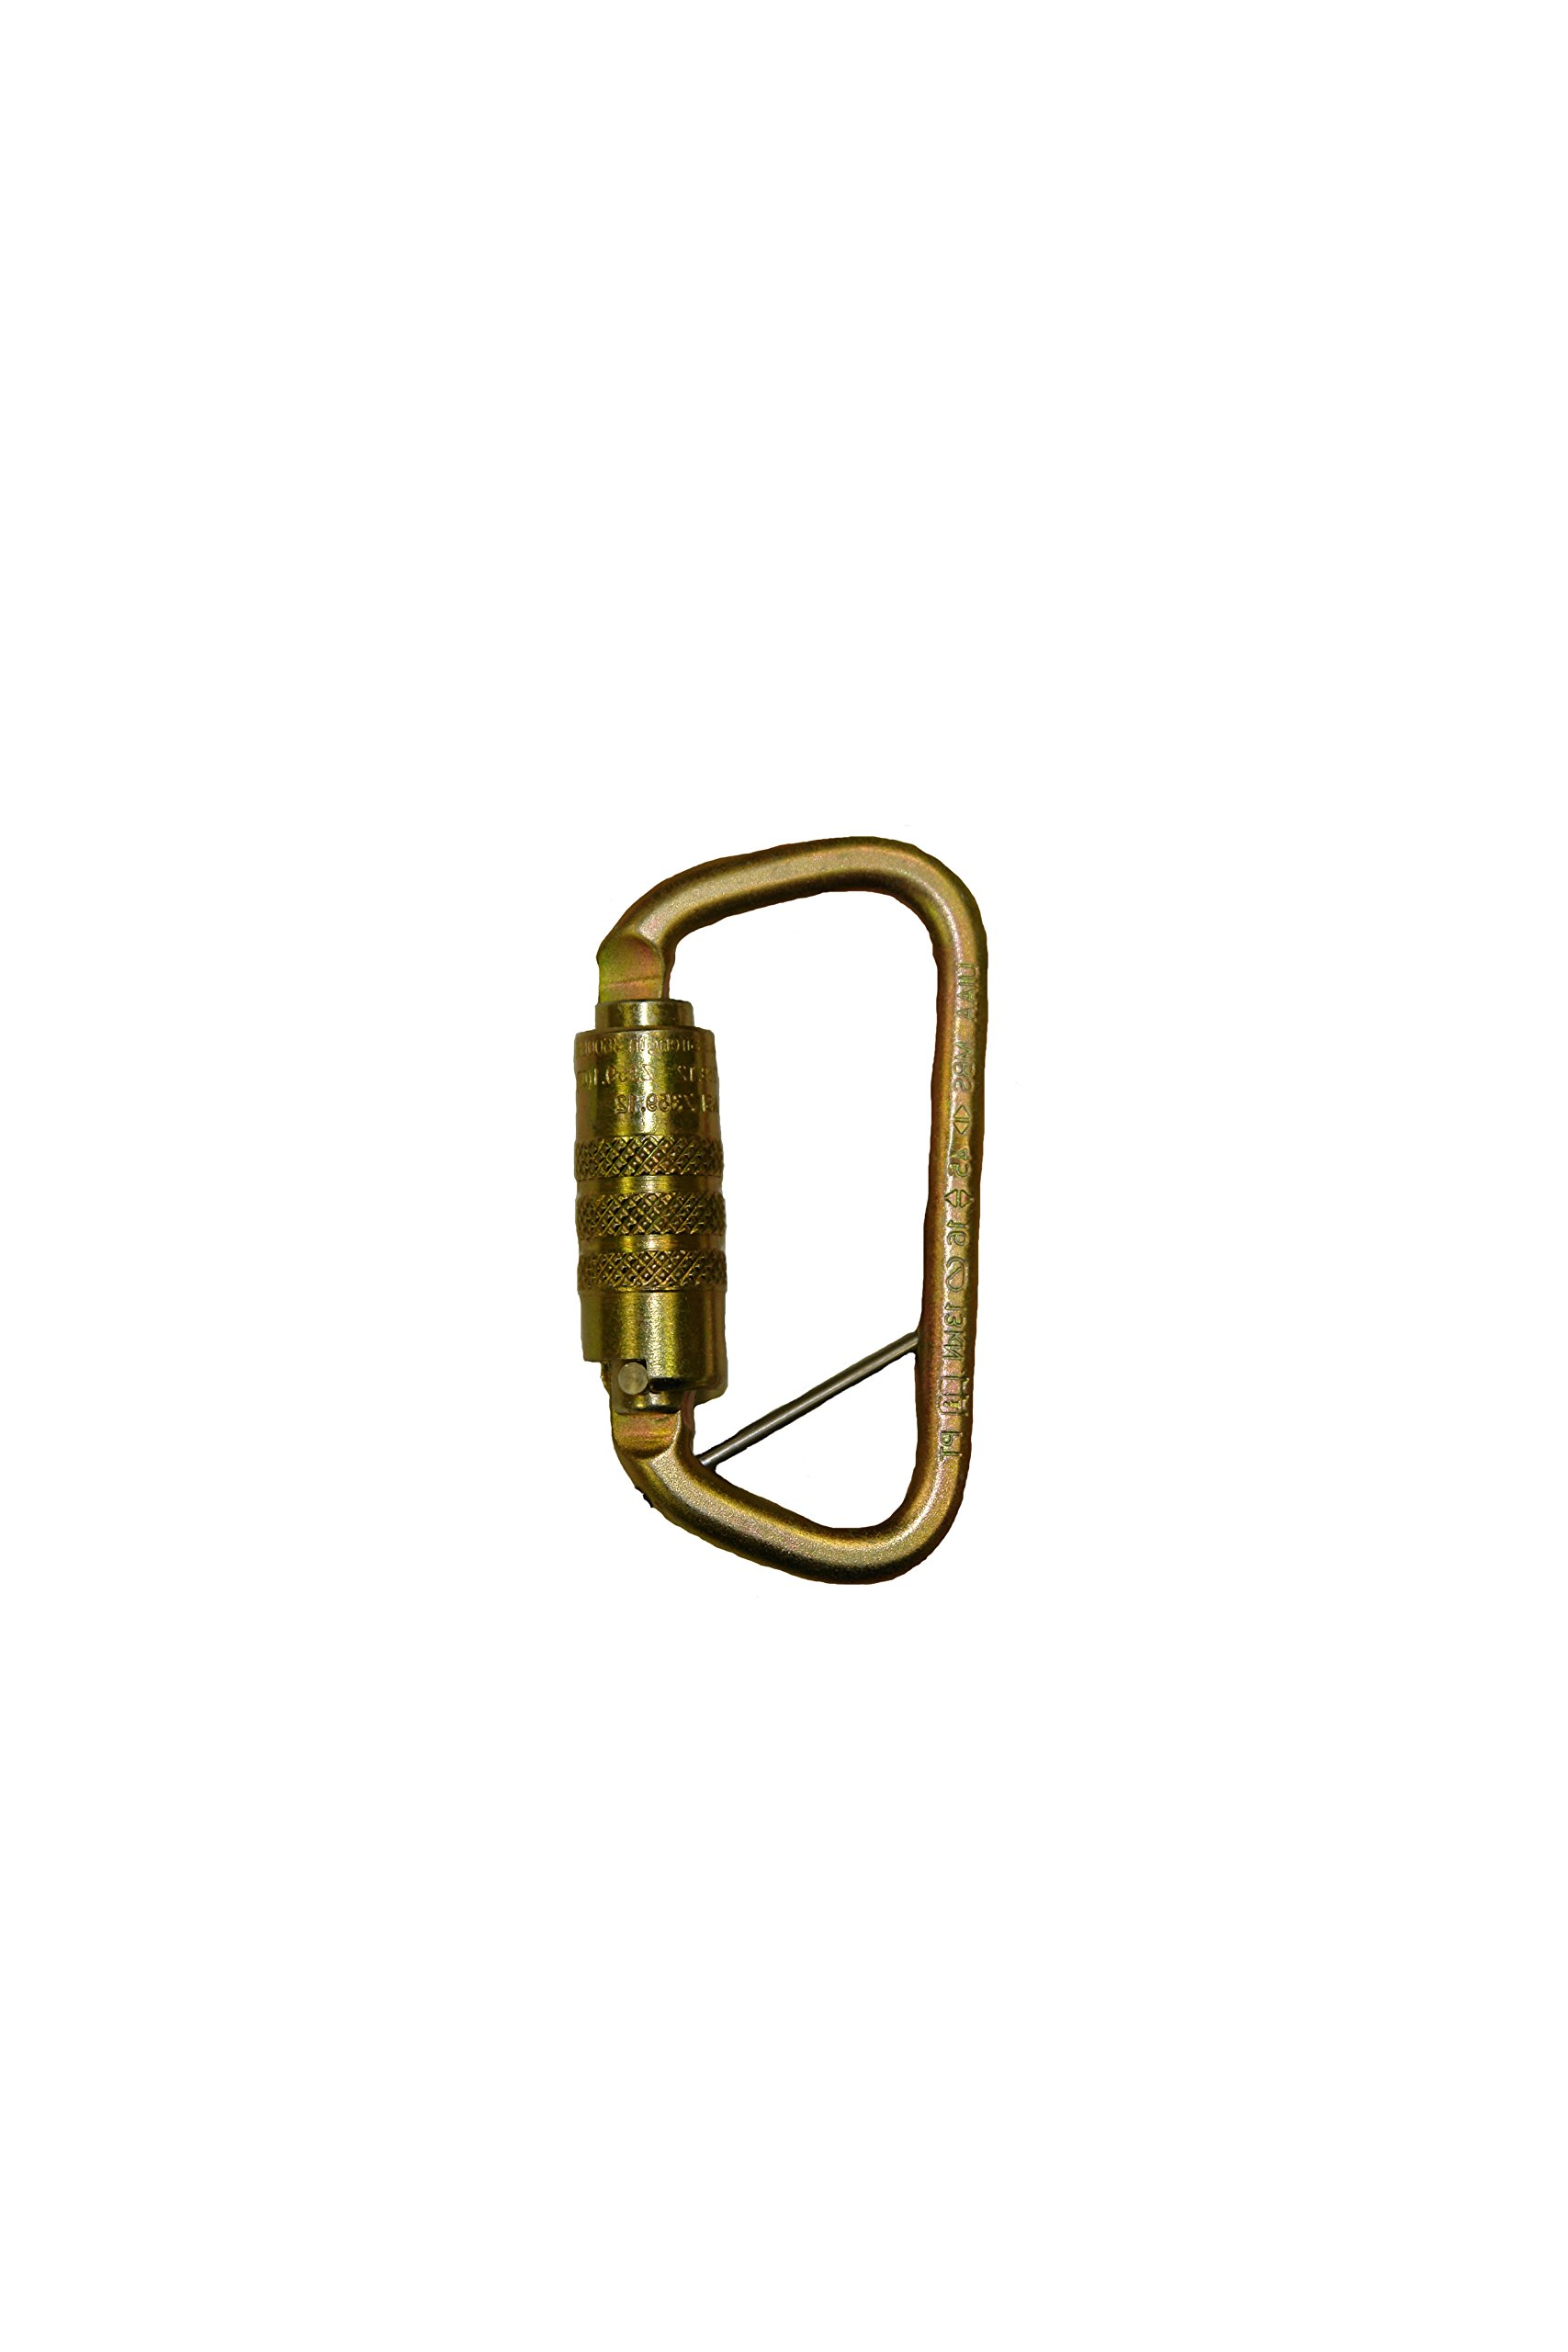 Elk River 17455 Fall Rated Aluminum Side Swing Carabiner with Auto Twist-Lock and Pin, 3600 lbs Gate, 1-1/8'' Gate Opening